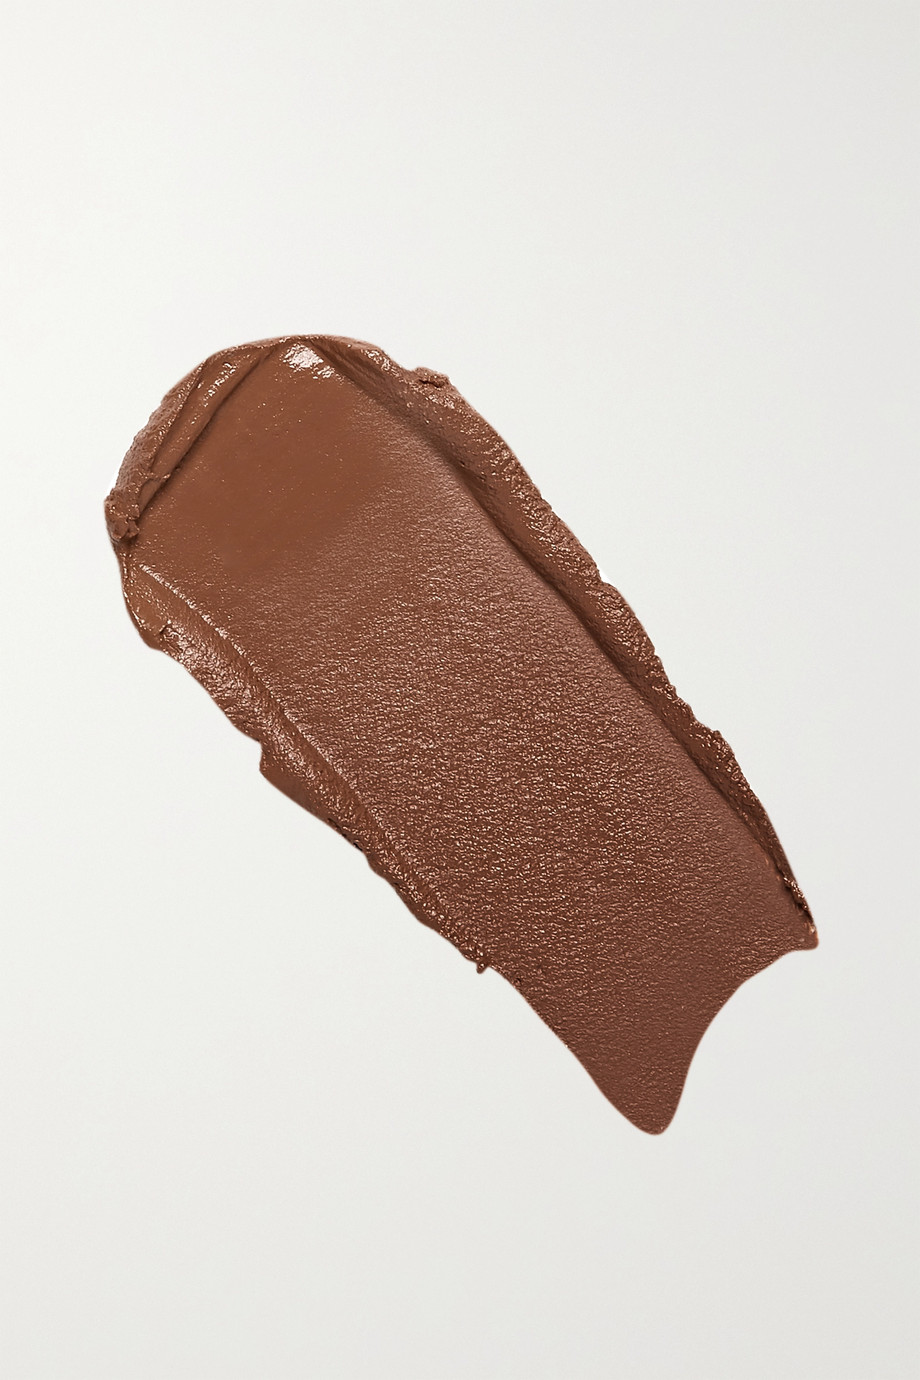 Kjaer Weis Invisible Touch Concealer - D330